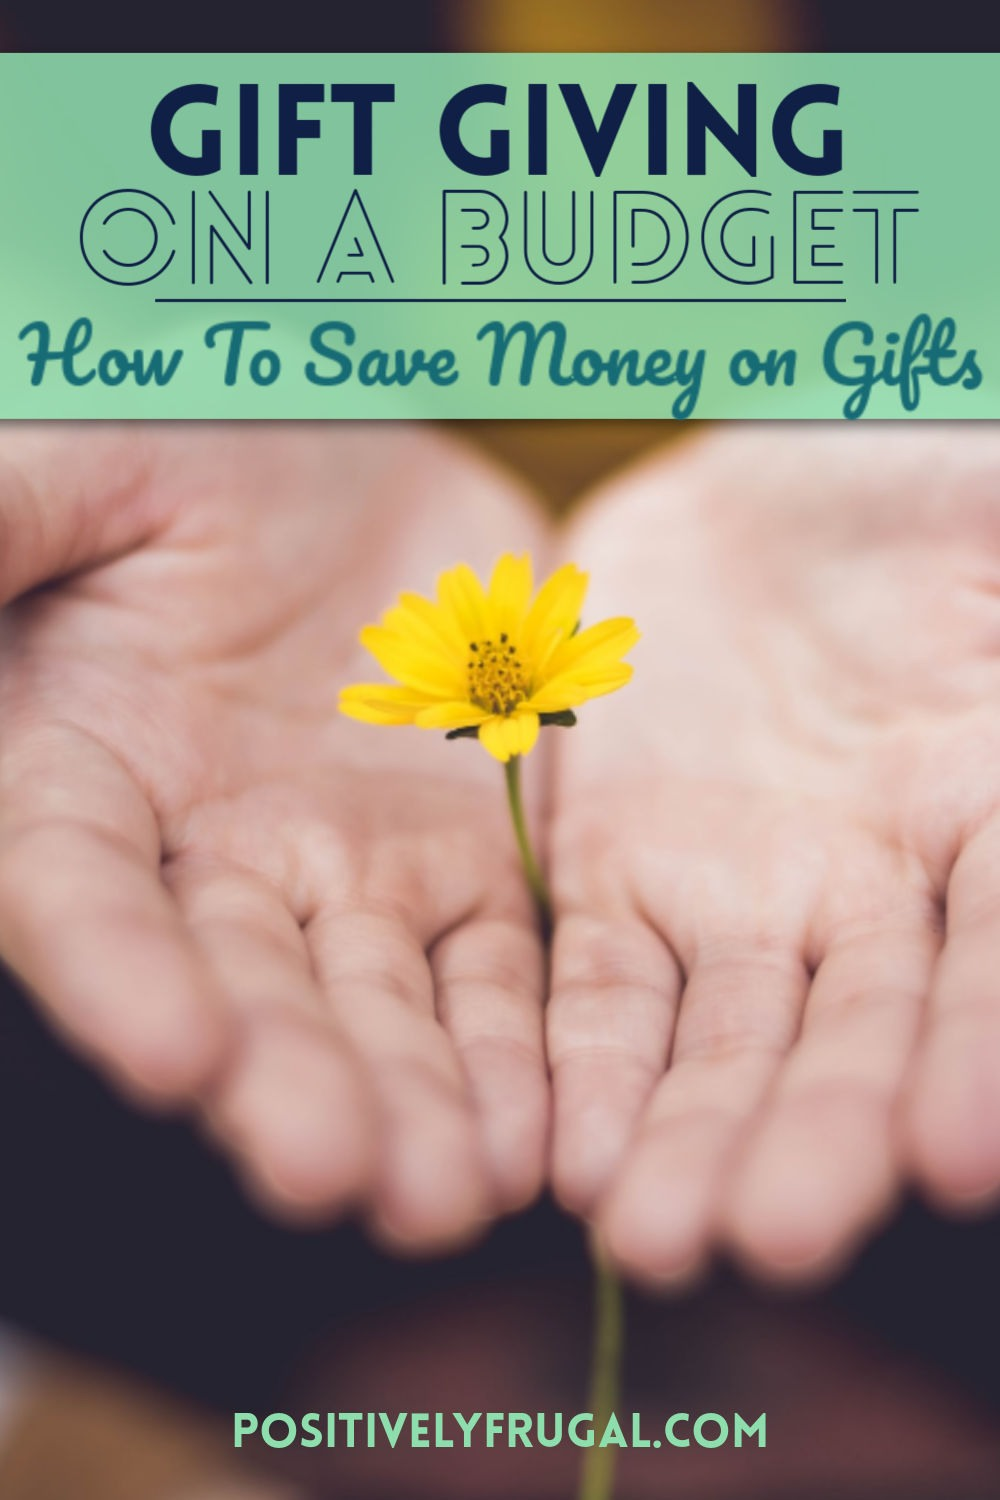 Gift Giving on a Budget Save Money on Gifts by PositivelyFrugal.com